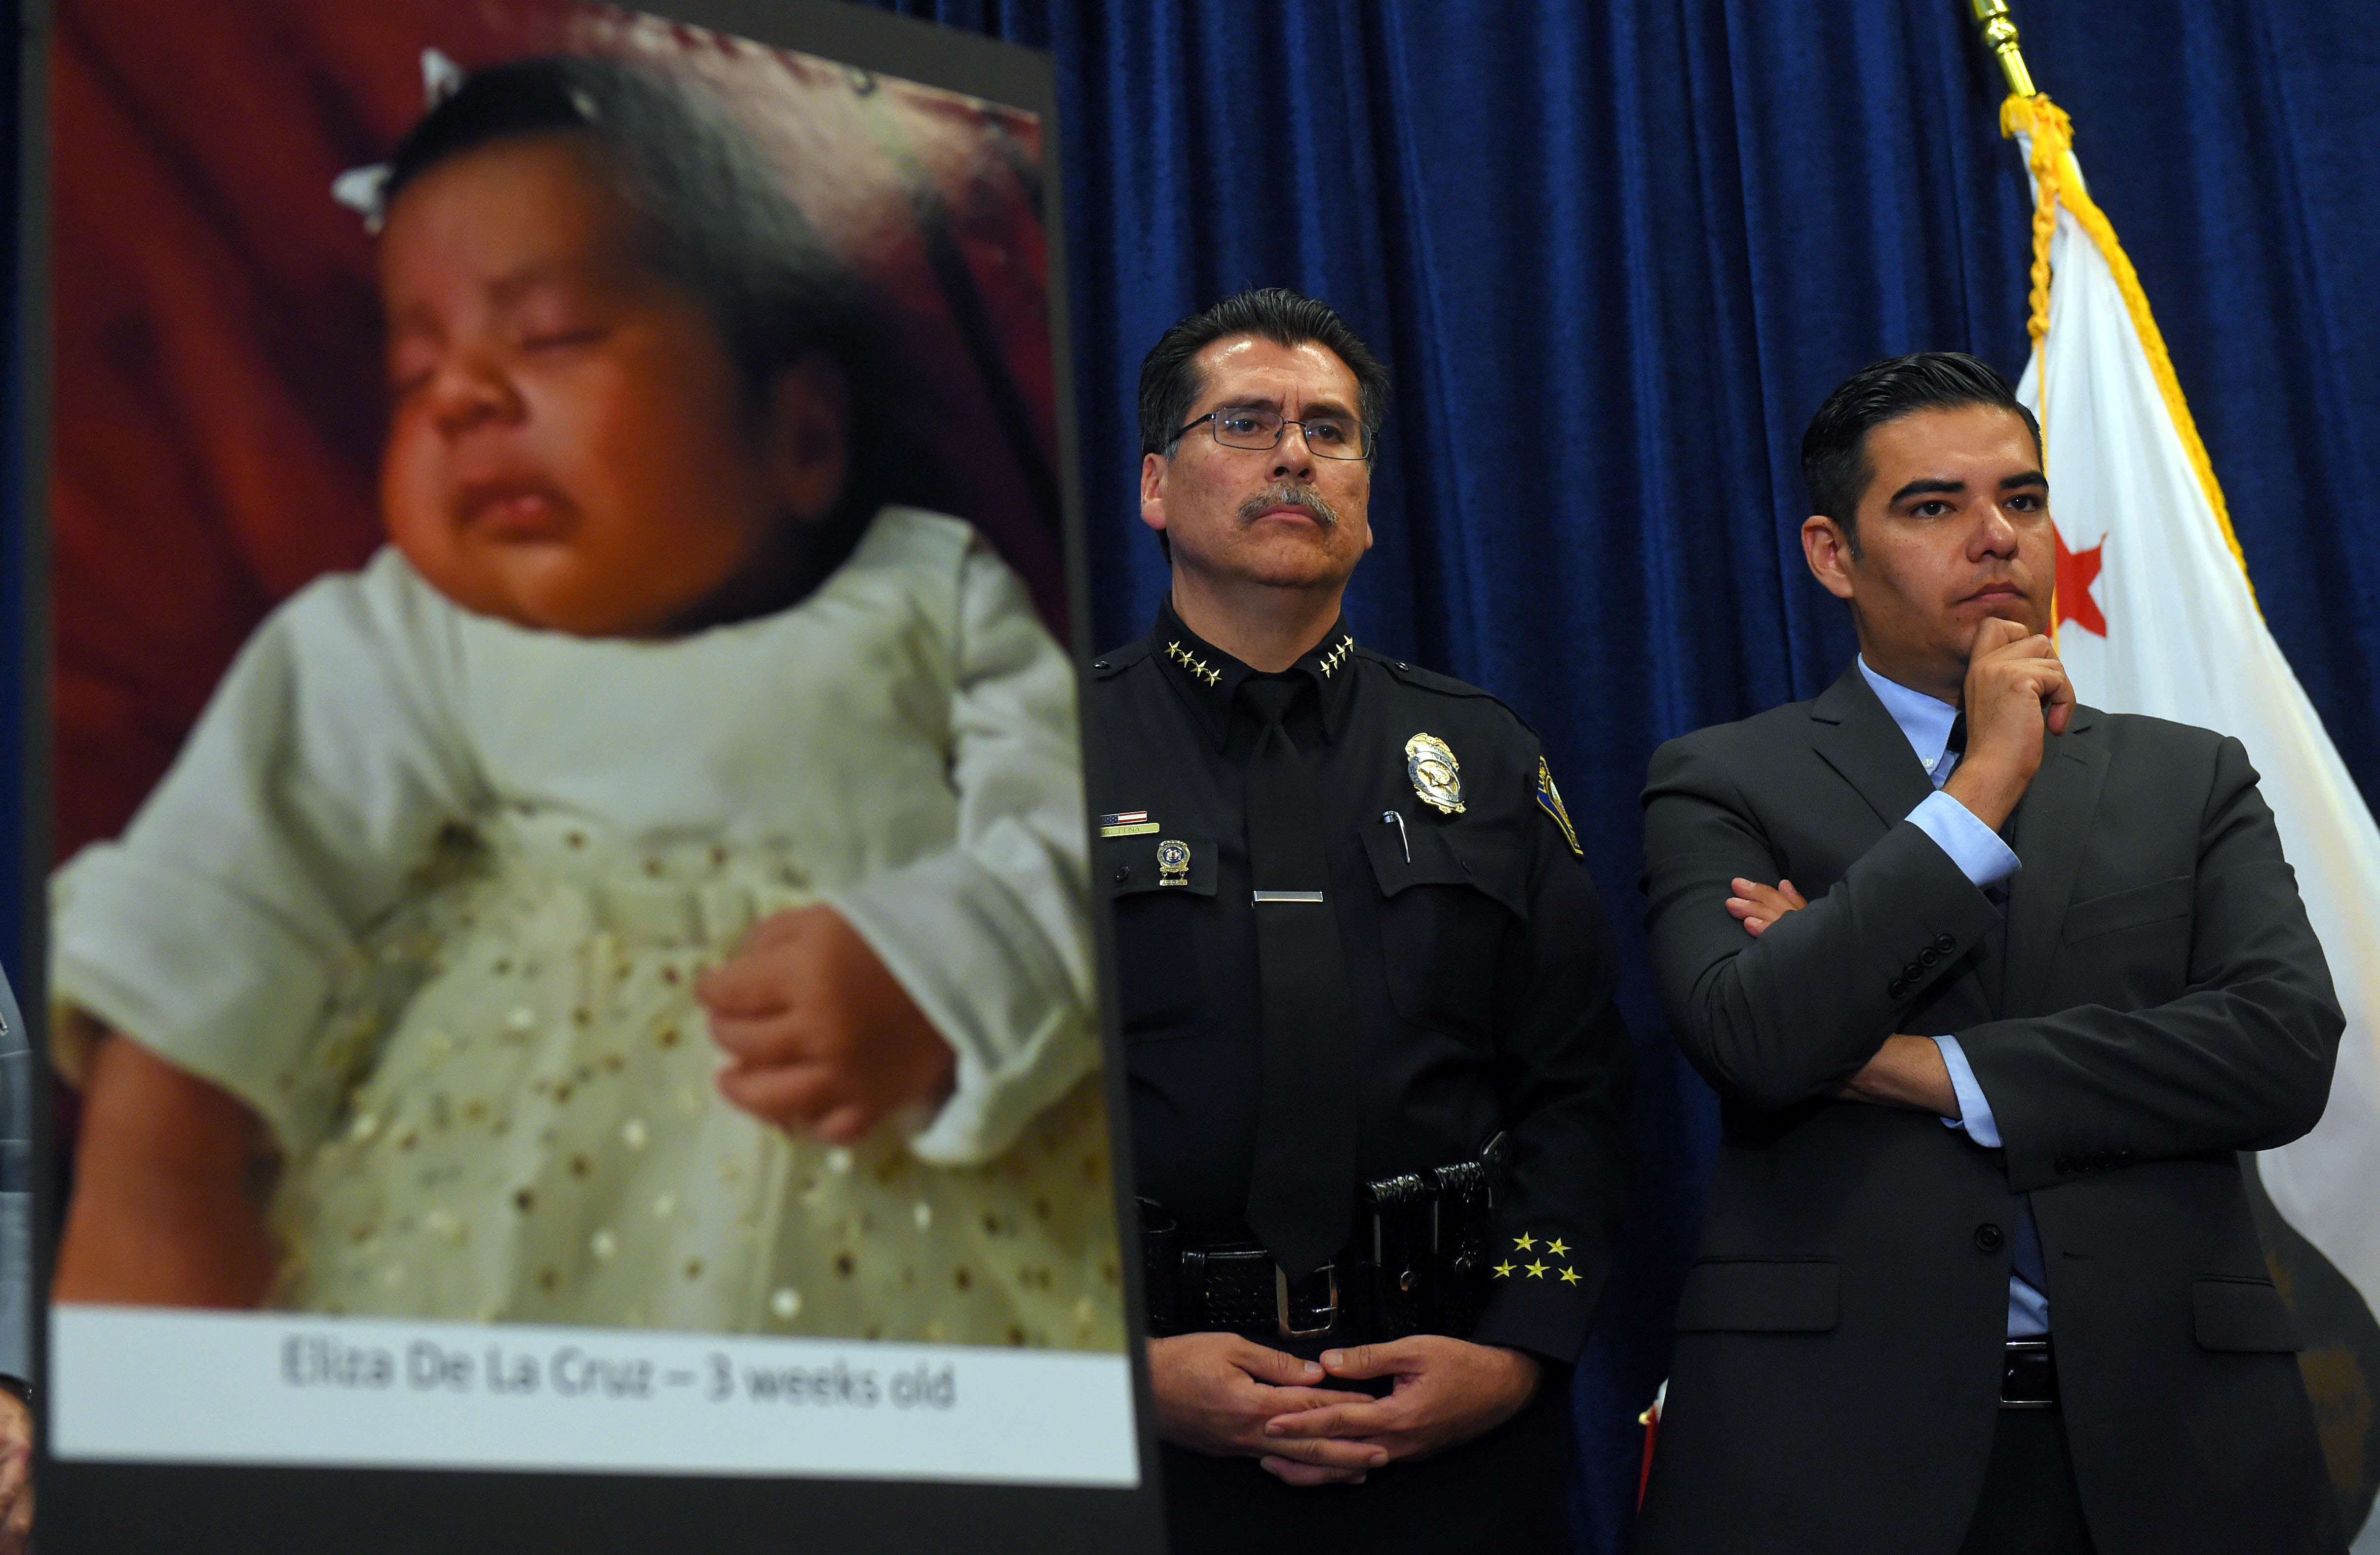 Long Beach police chief Robert Luna, left, and Mayor Robert Garcia stand during a news conference in Long Beach, Calif., on March 25, 2015